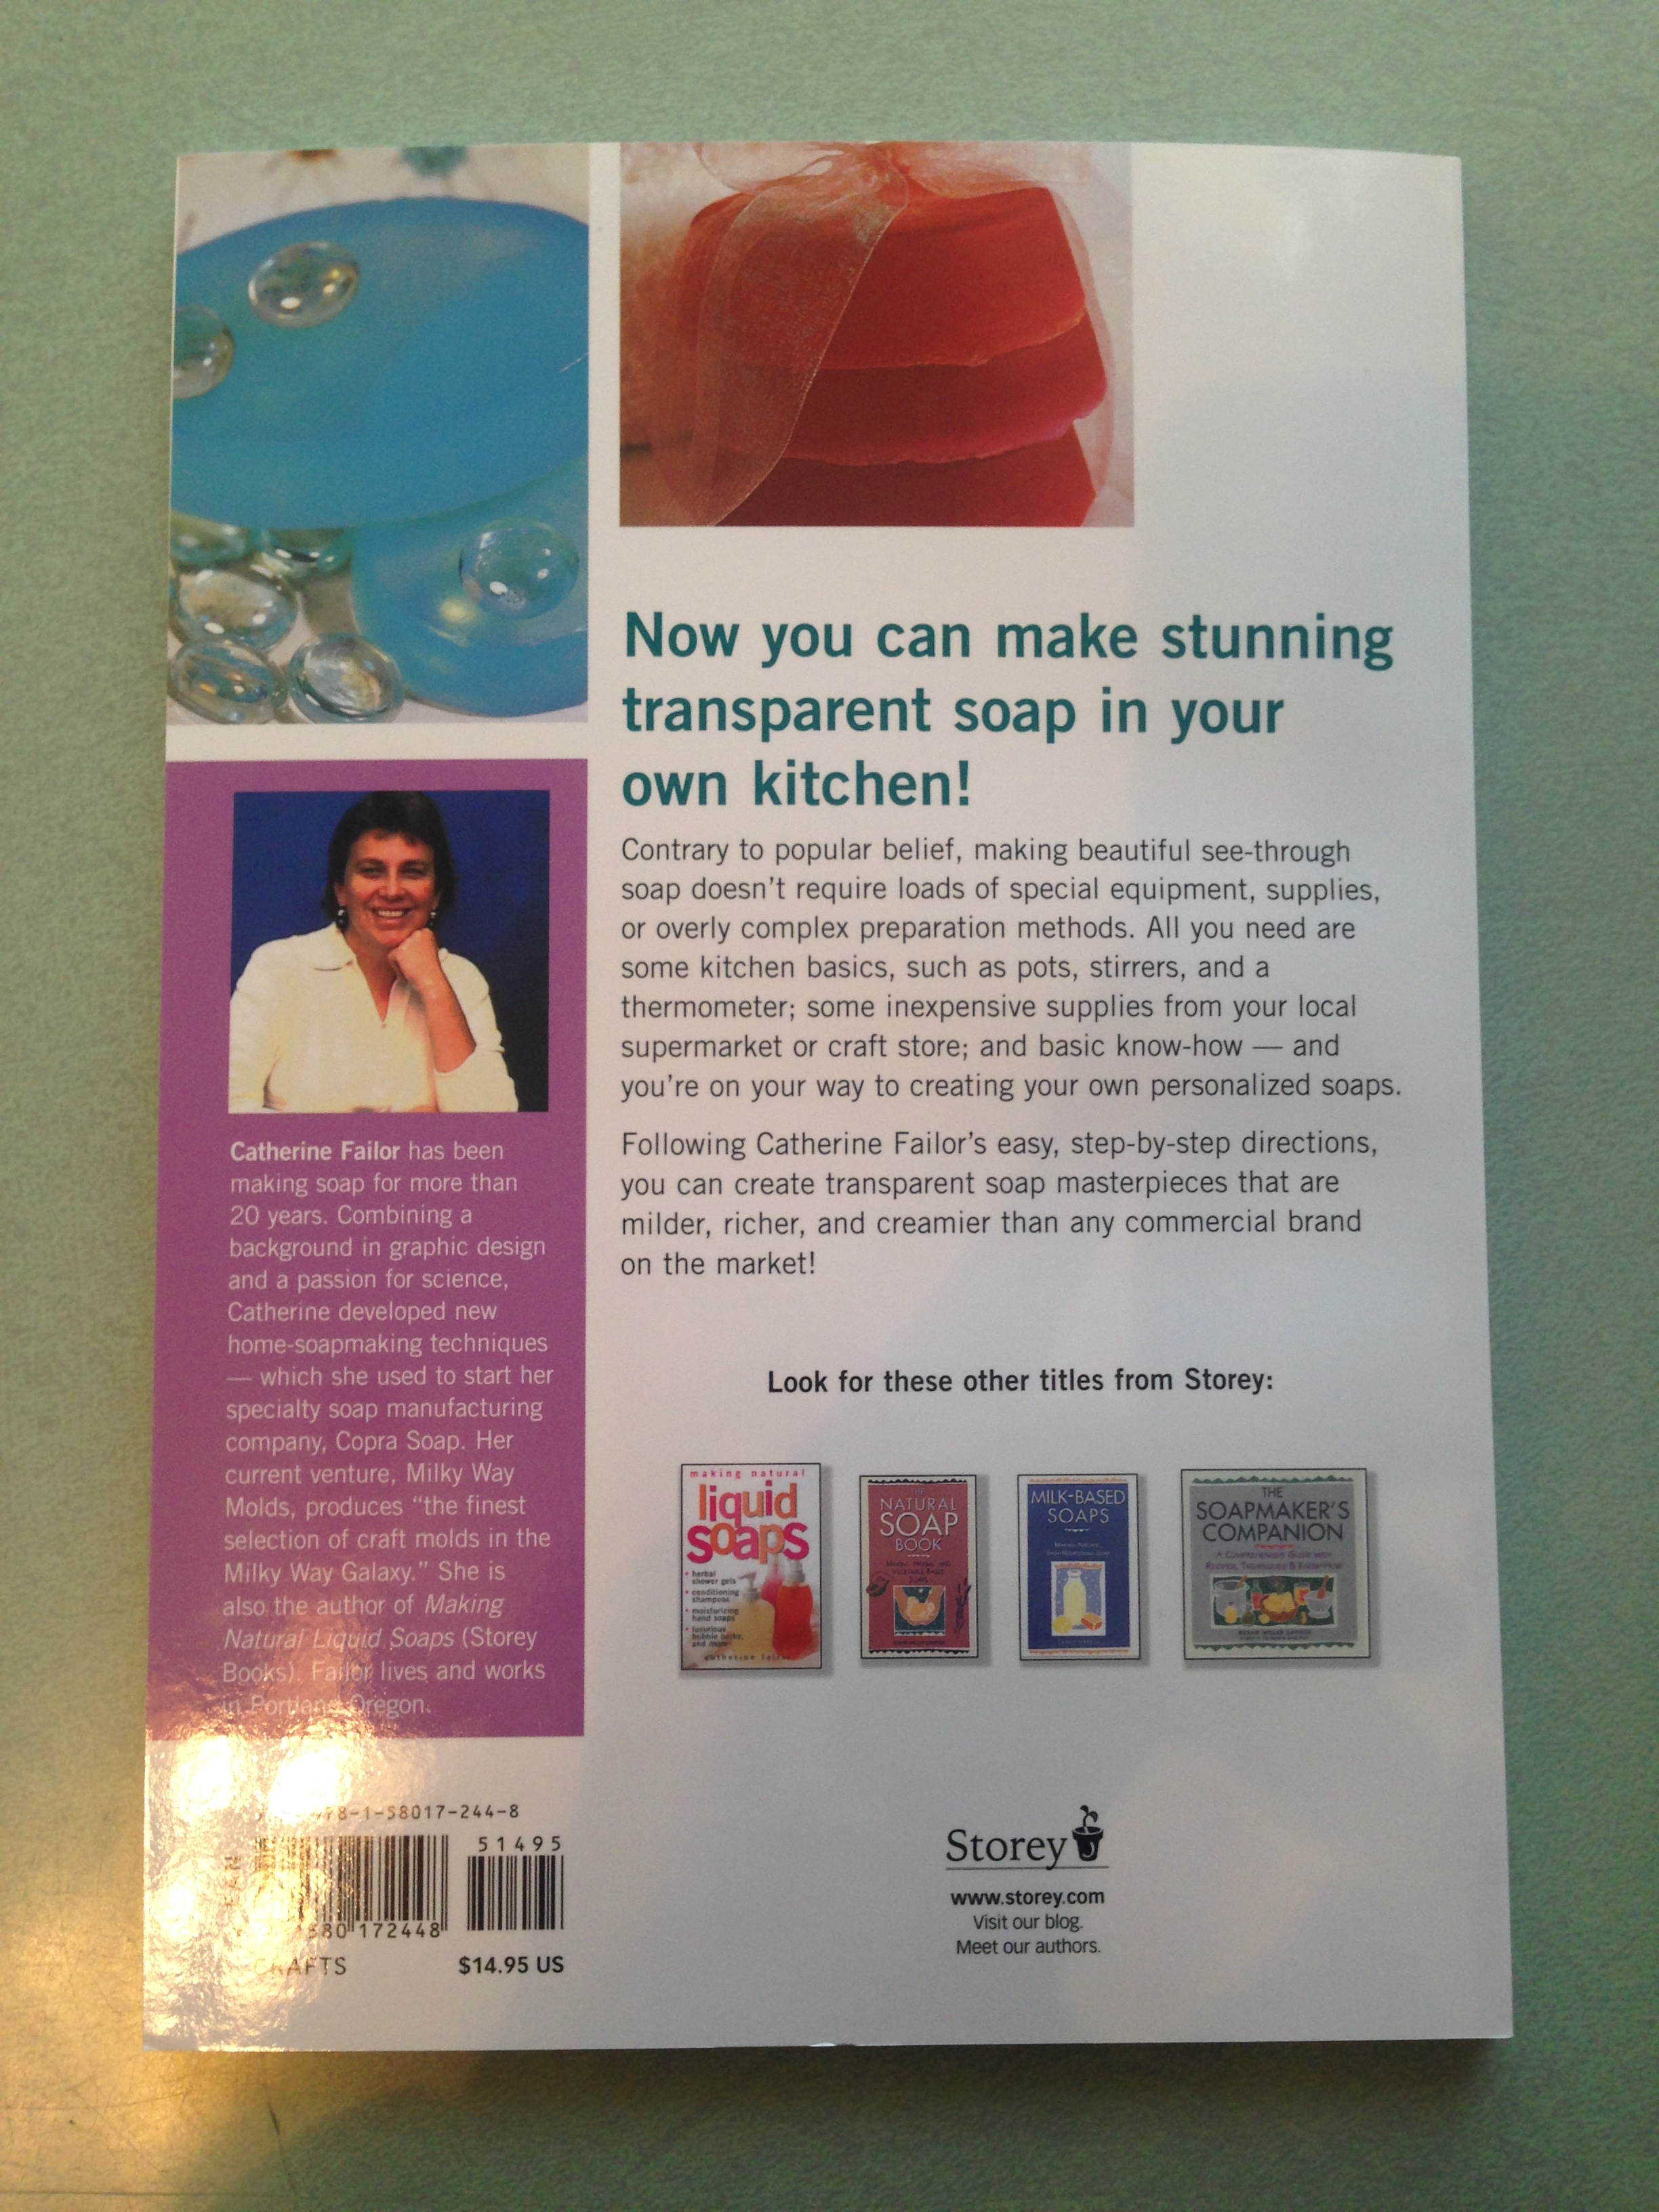 Making Transparent Soap (Paperback Book) - The Nova Studio